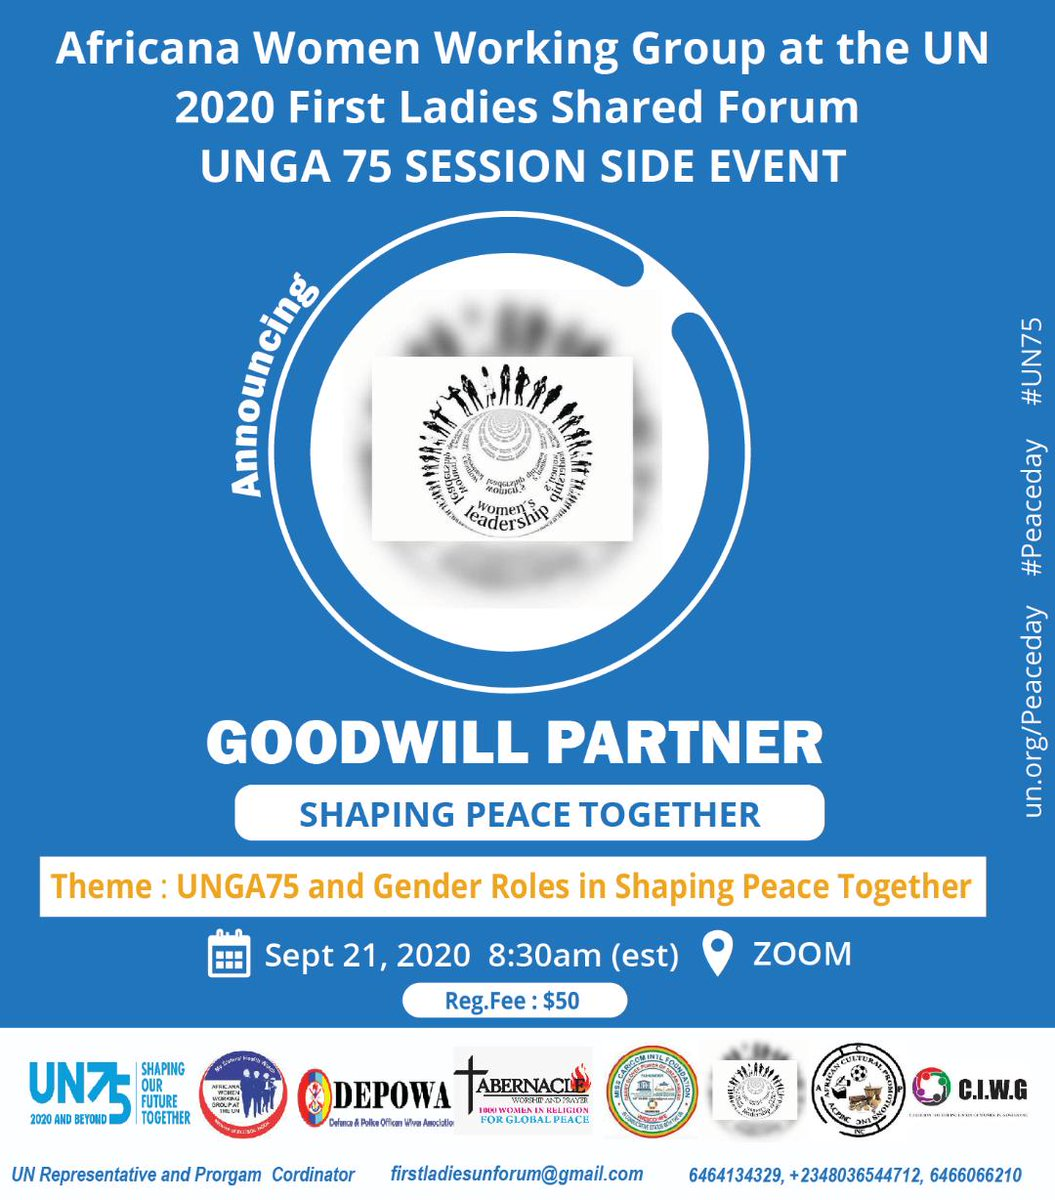 We are proud to share Women's Leadership, as GOODWILL PARTNERS at Africana Women Working Group at the UN 2020, first Ladies Shared Forum UNGA 75 Session Side Event.    Registration Fees: $50  Where: Zoom Registration Link: https://t.co/RhJkIvuOVH #UN75 #UNPeacekeeping #unpeaceday https://t.co/C3CFF72QMY